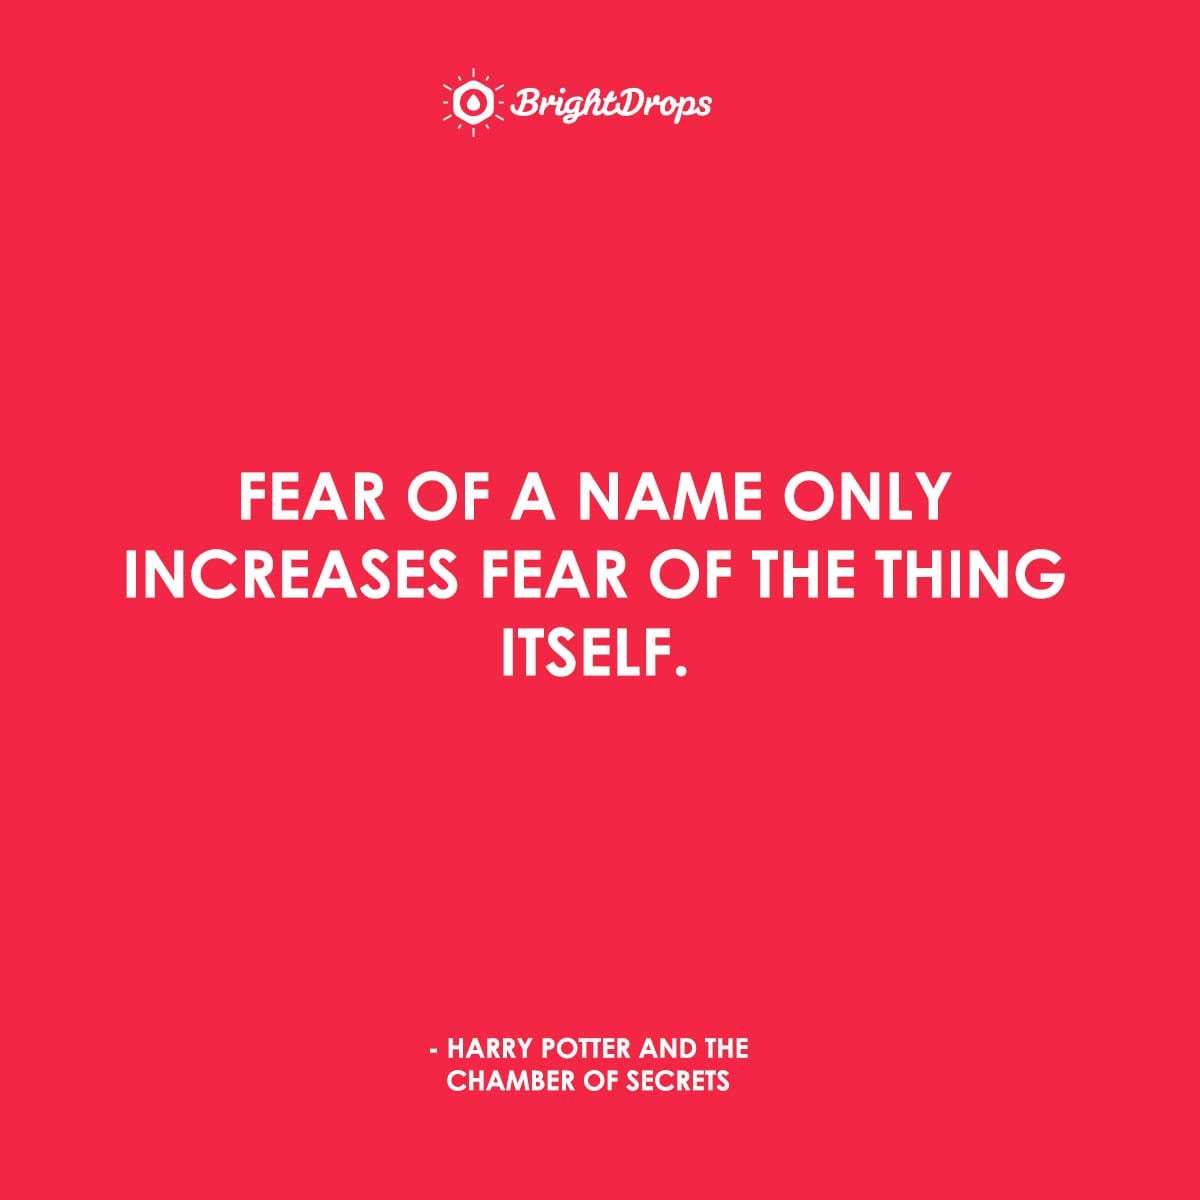 Fear of a name only increases fear of the thing itself. - Harry Potter and the Chamber of Secrets